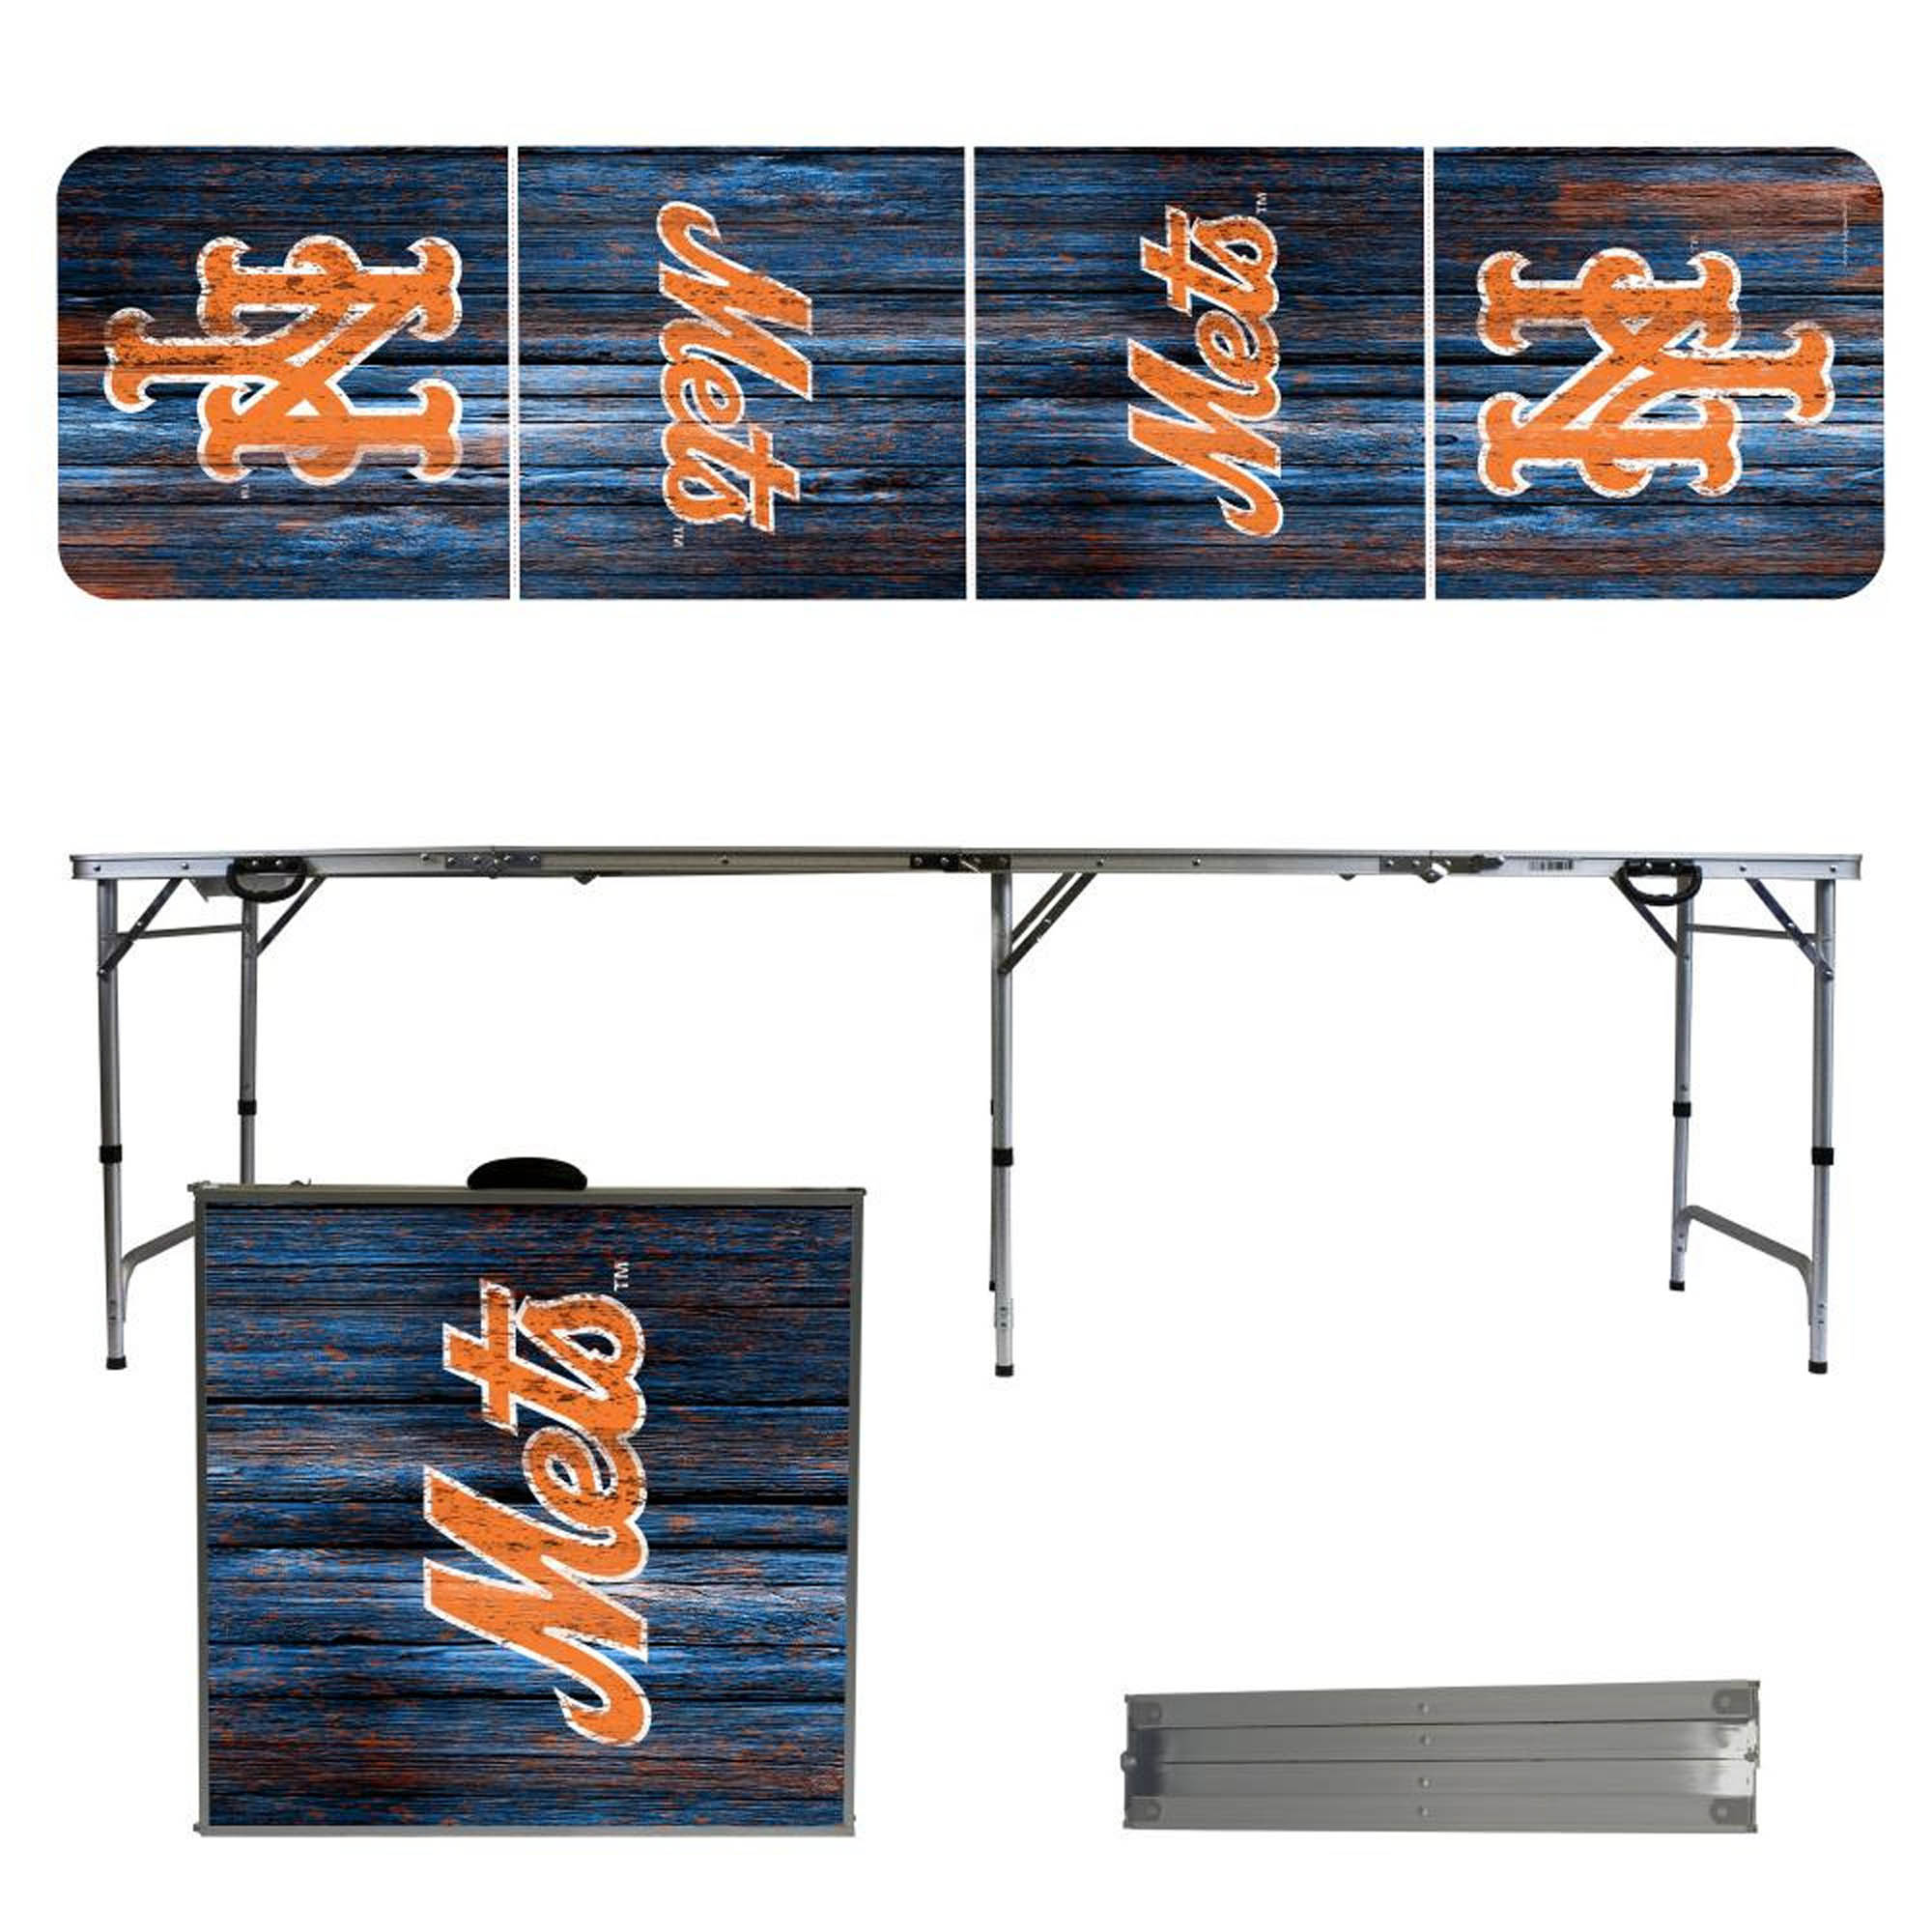 New York Mets Weathered Design 8' Portable Folding Tailgate Table - No Size